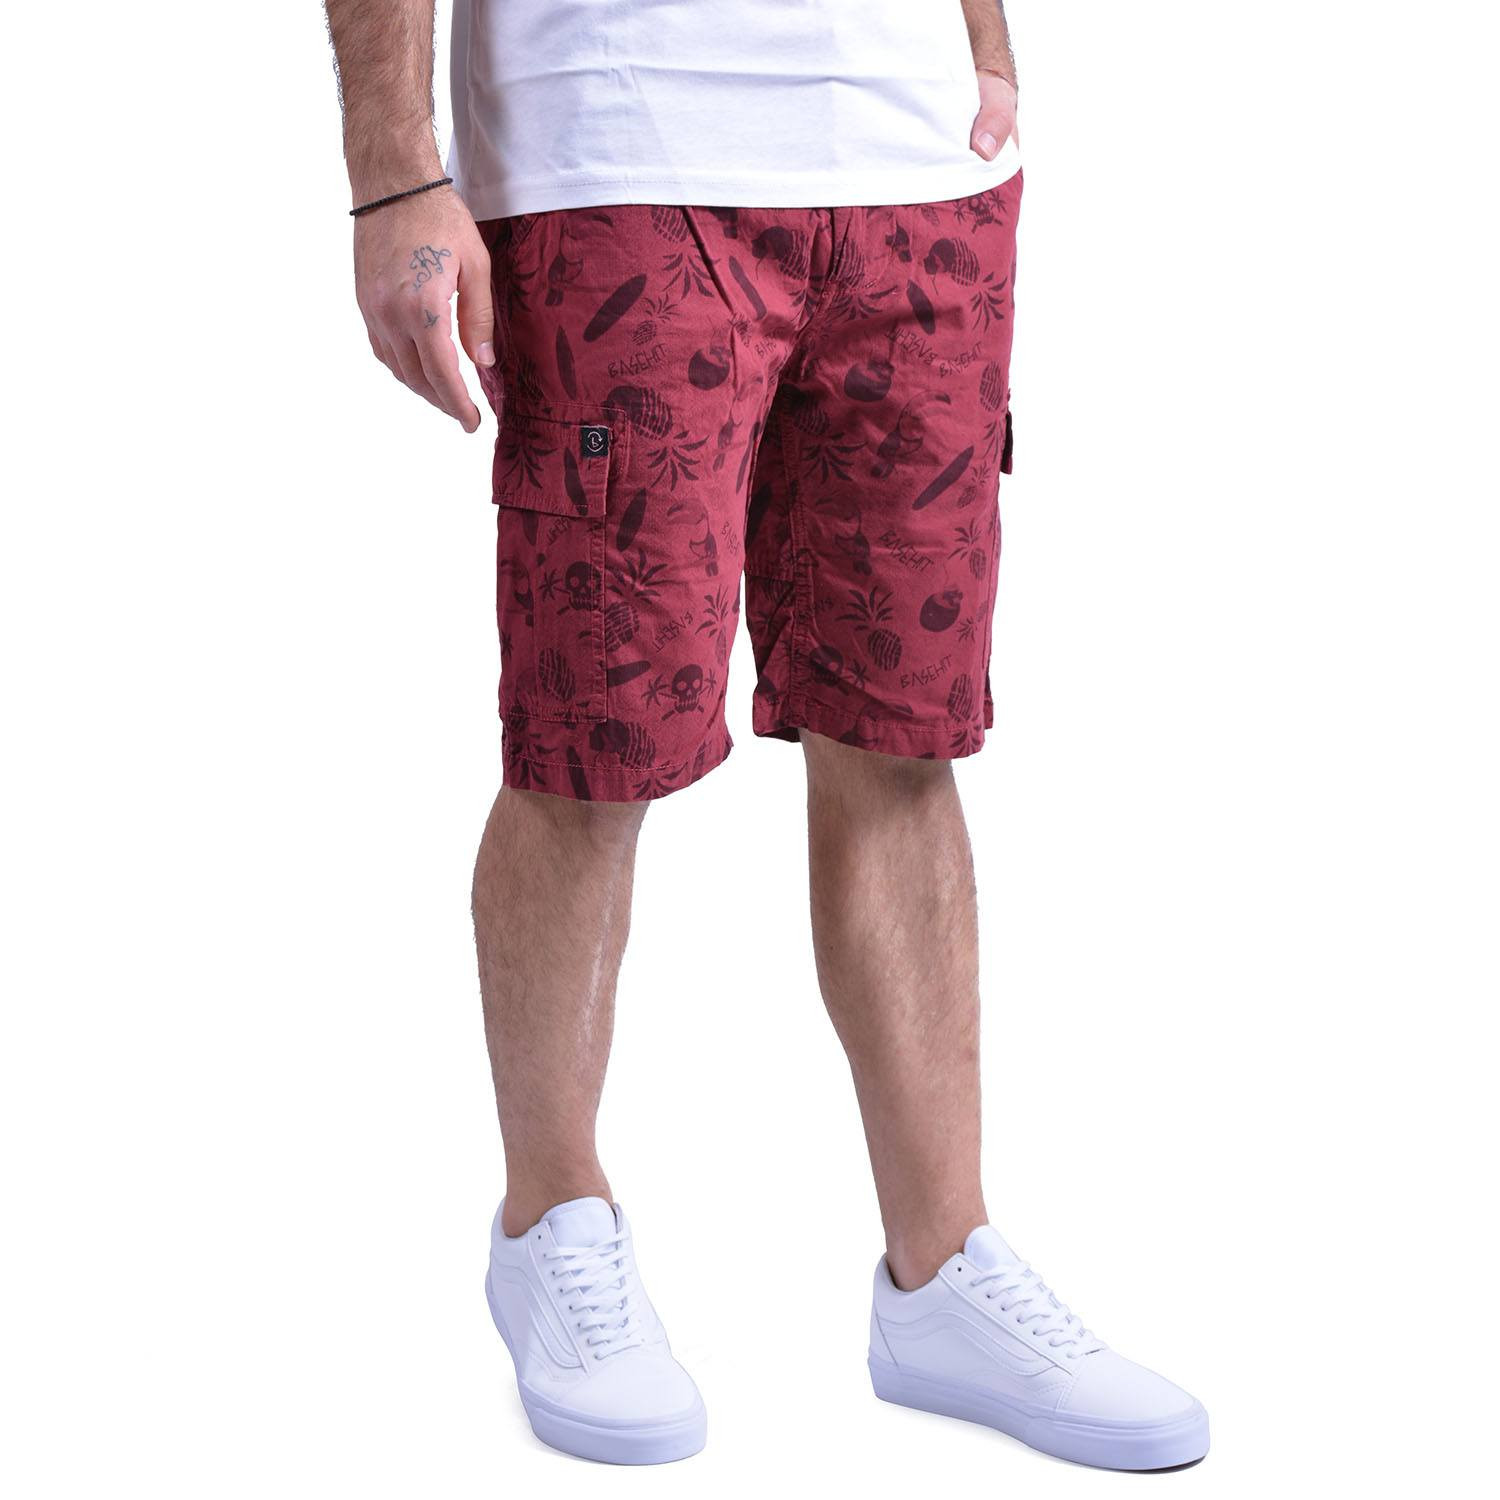 Basehit Men's printed gd cargo short pants (20819101868_27124)